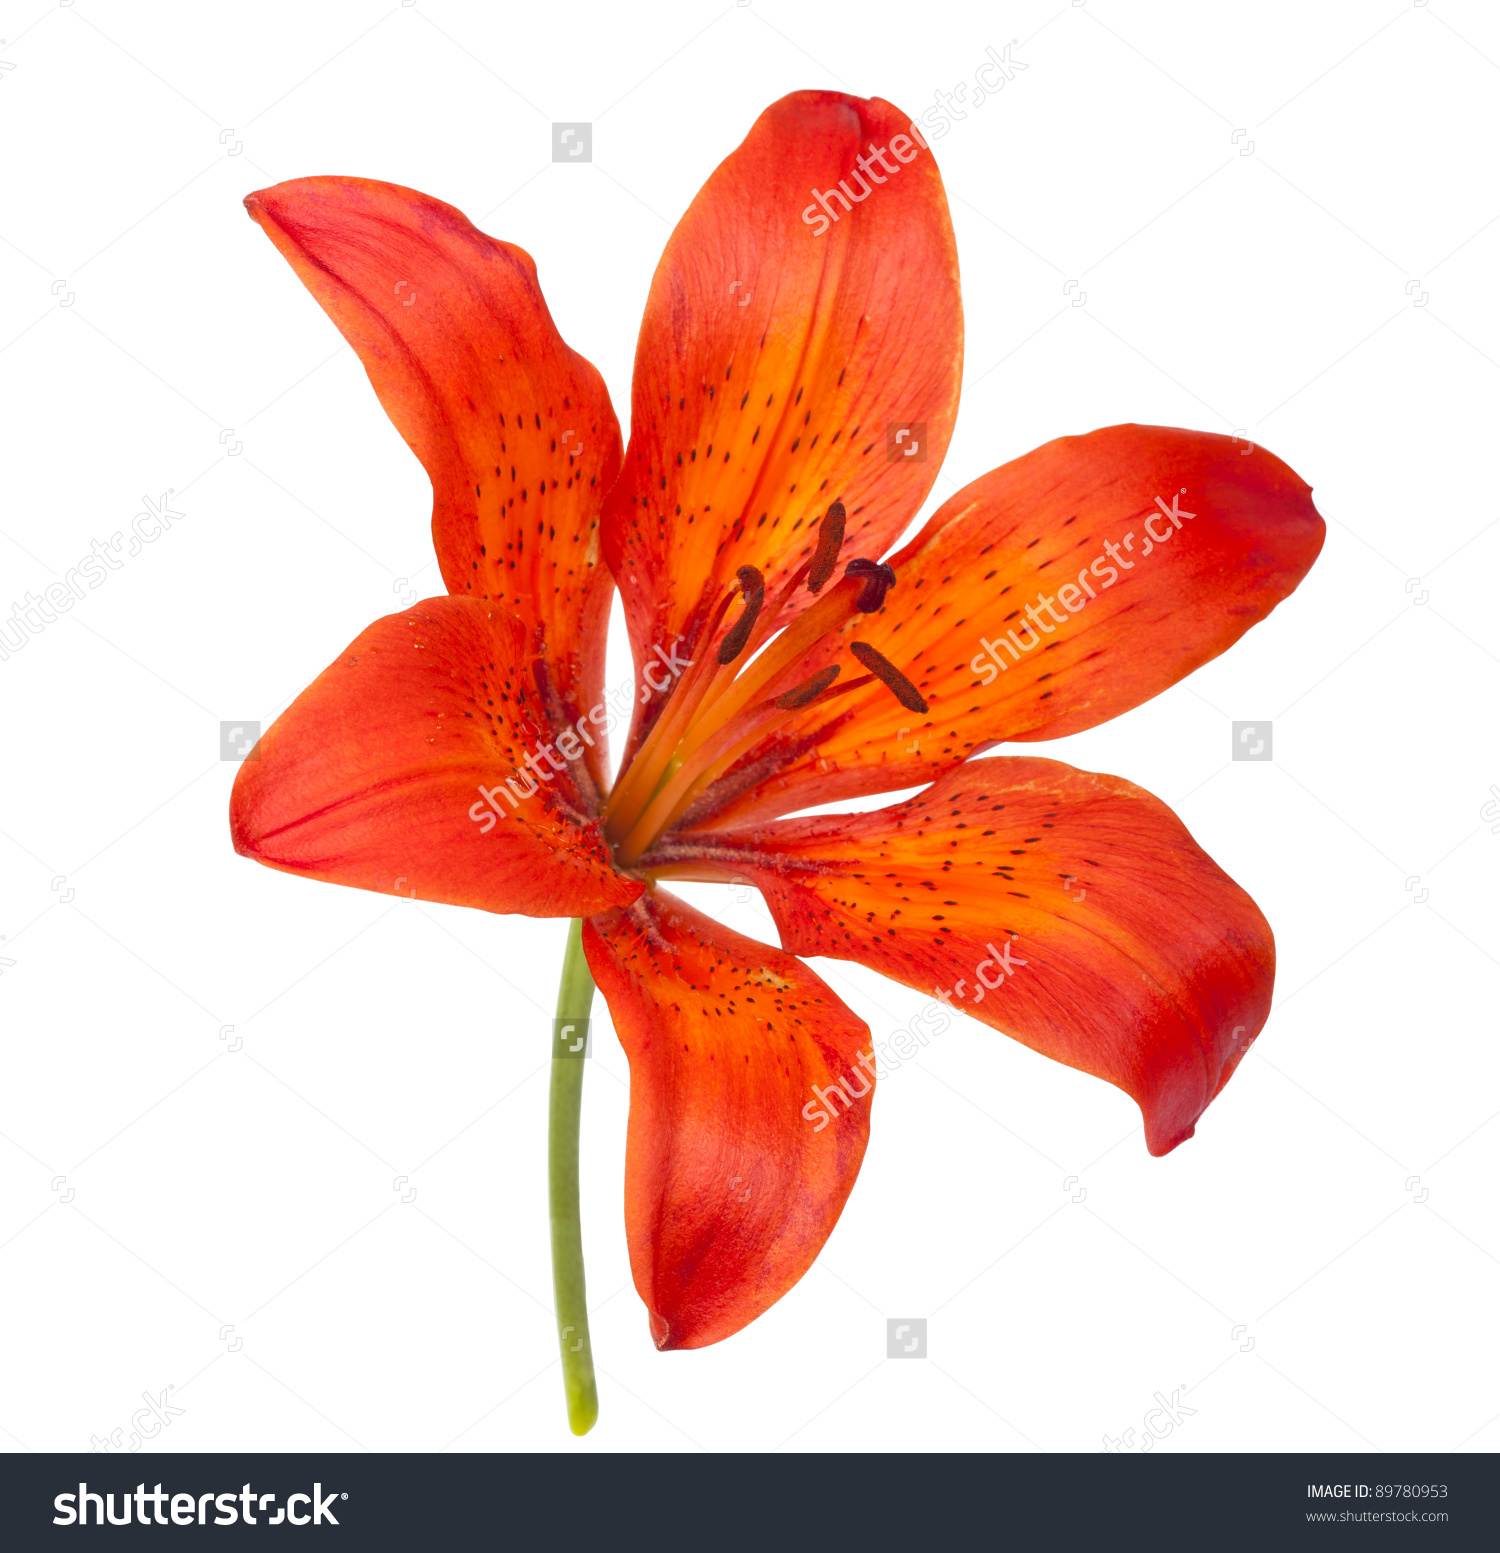 Tiger Lily clipart #8, Download drawings